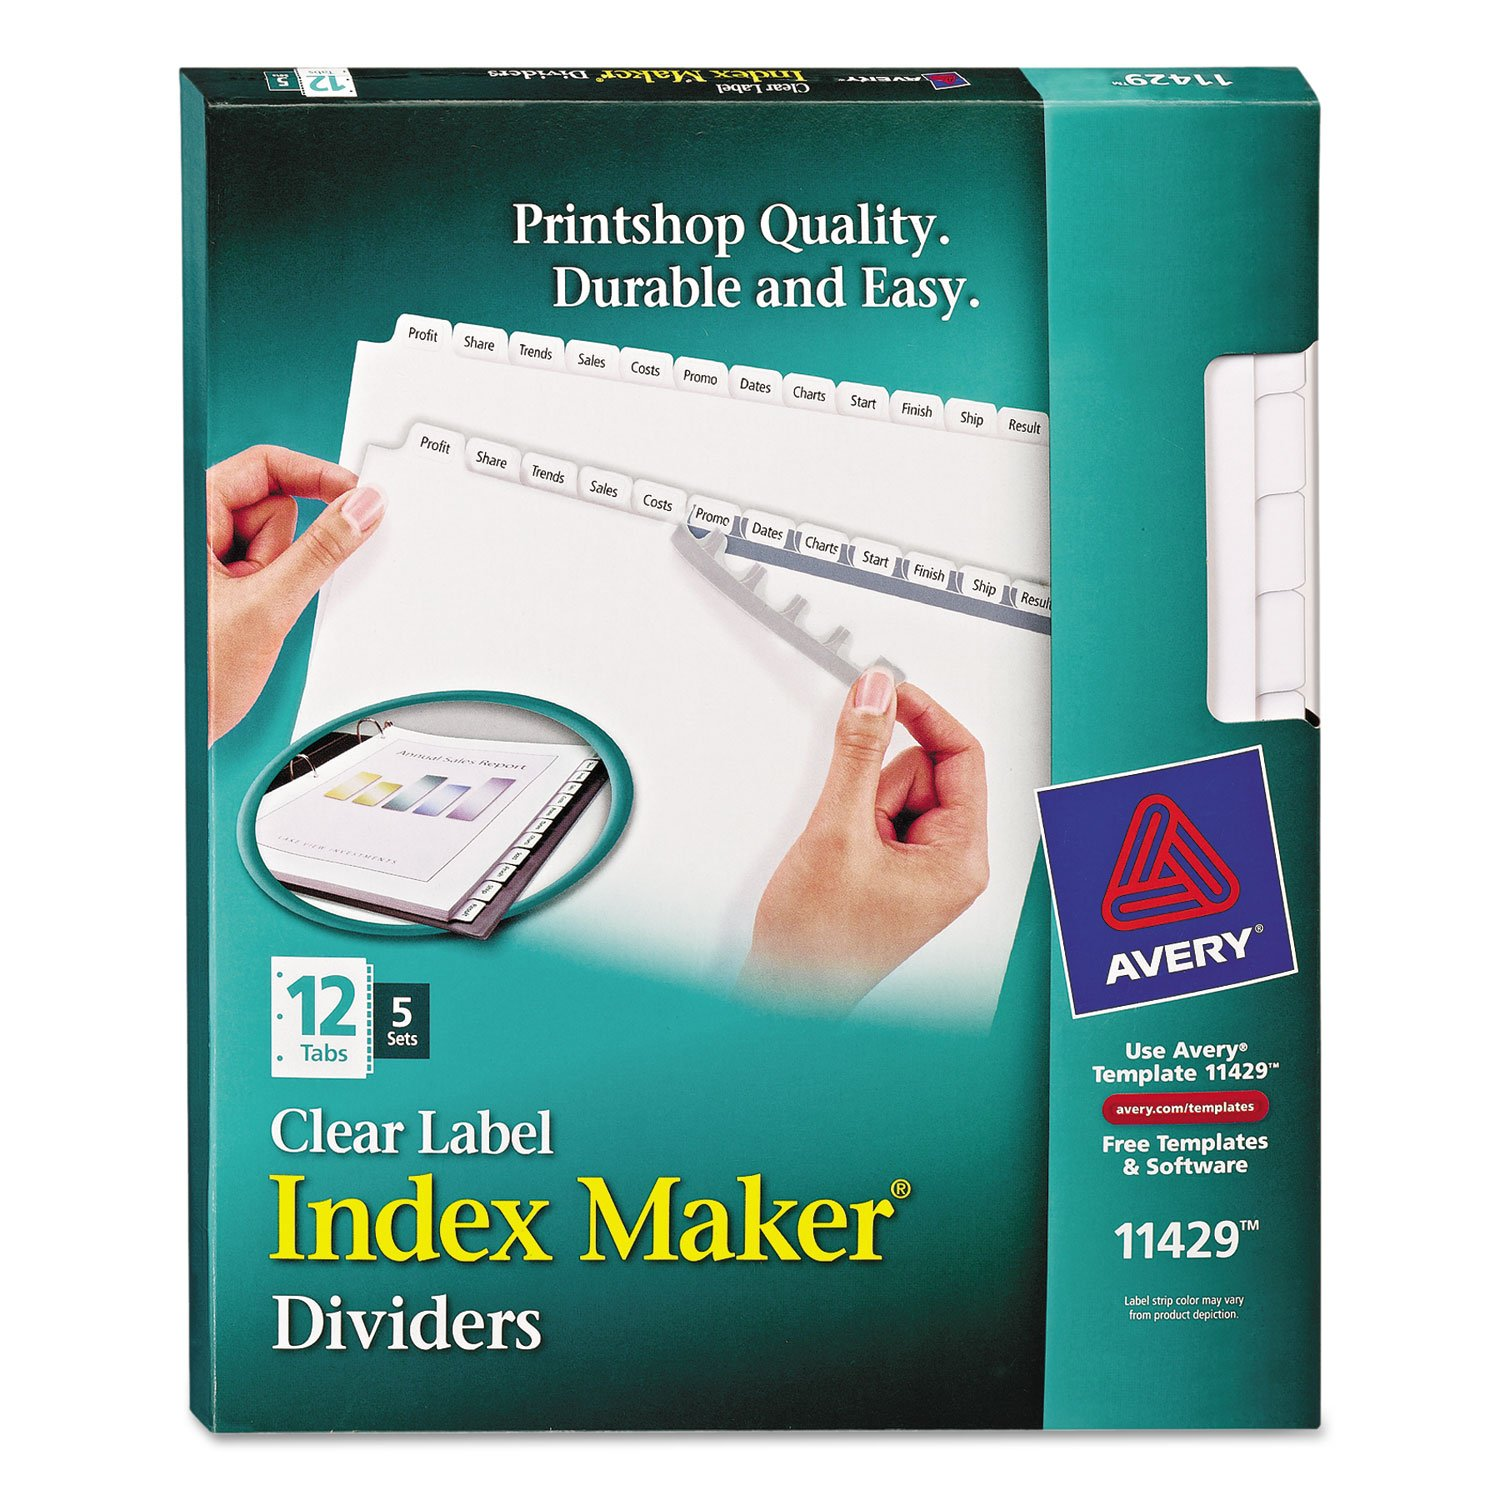 Avery 11429 Index Maker, Laser, Punched, 12-Tabs, 5/ST, 8-1/2'x11',CL 8-1/2x11 AVERY-DENNISON-KNM